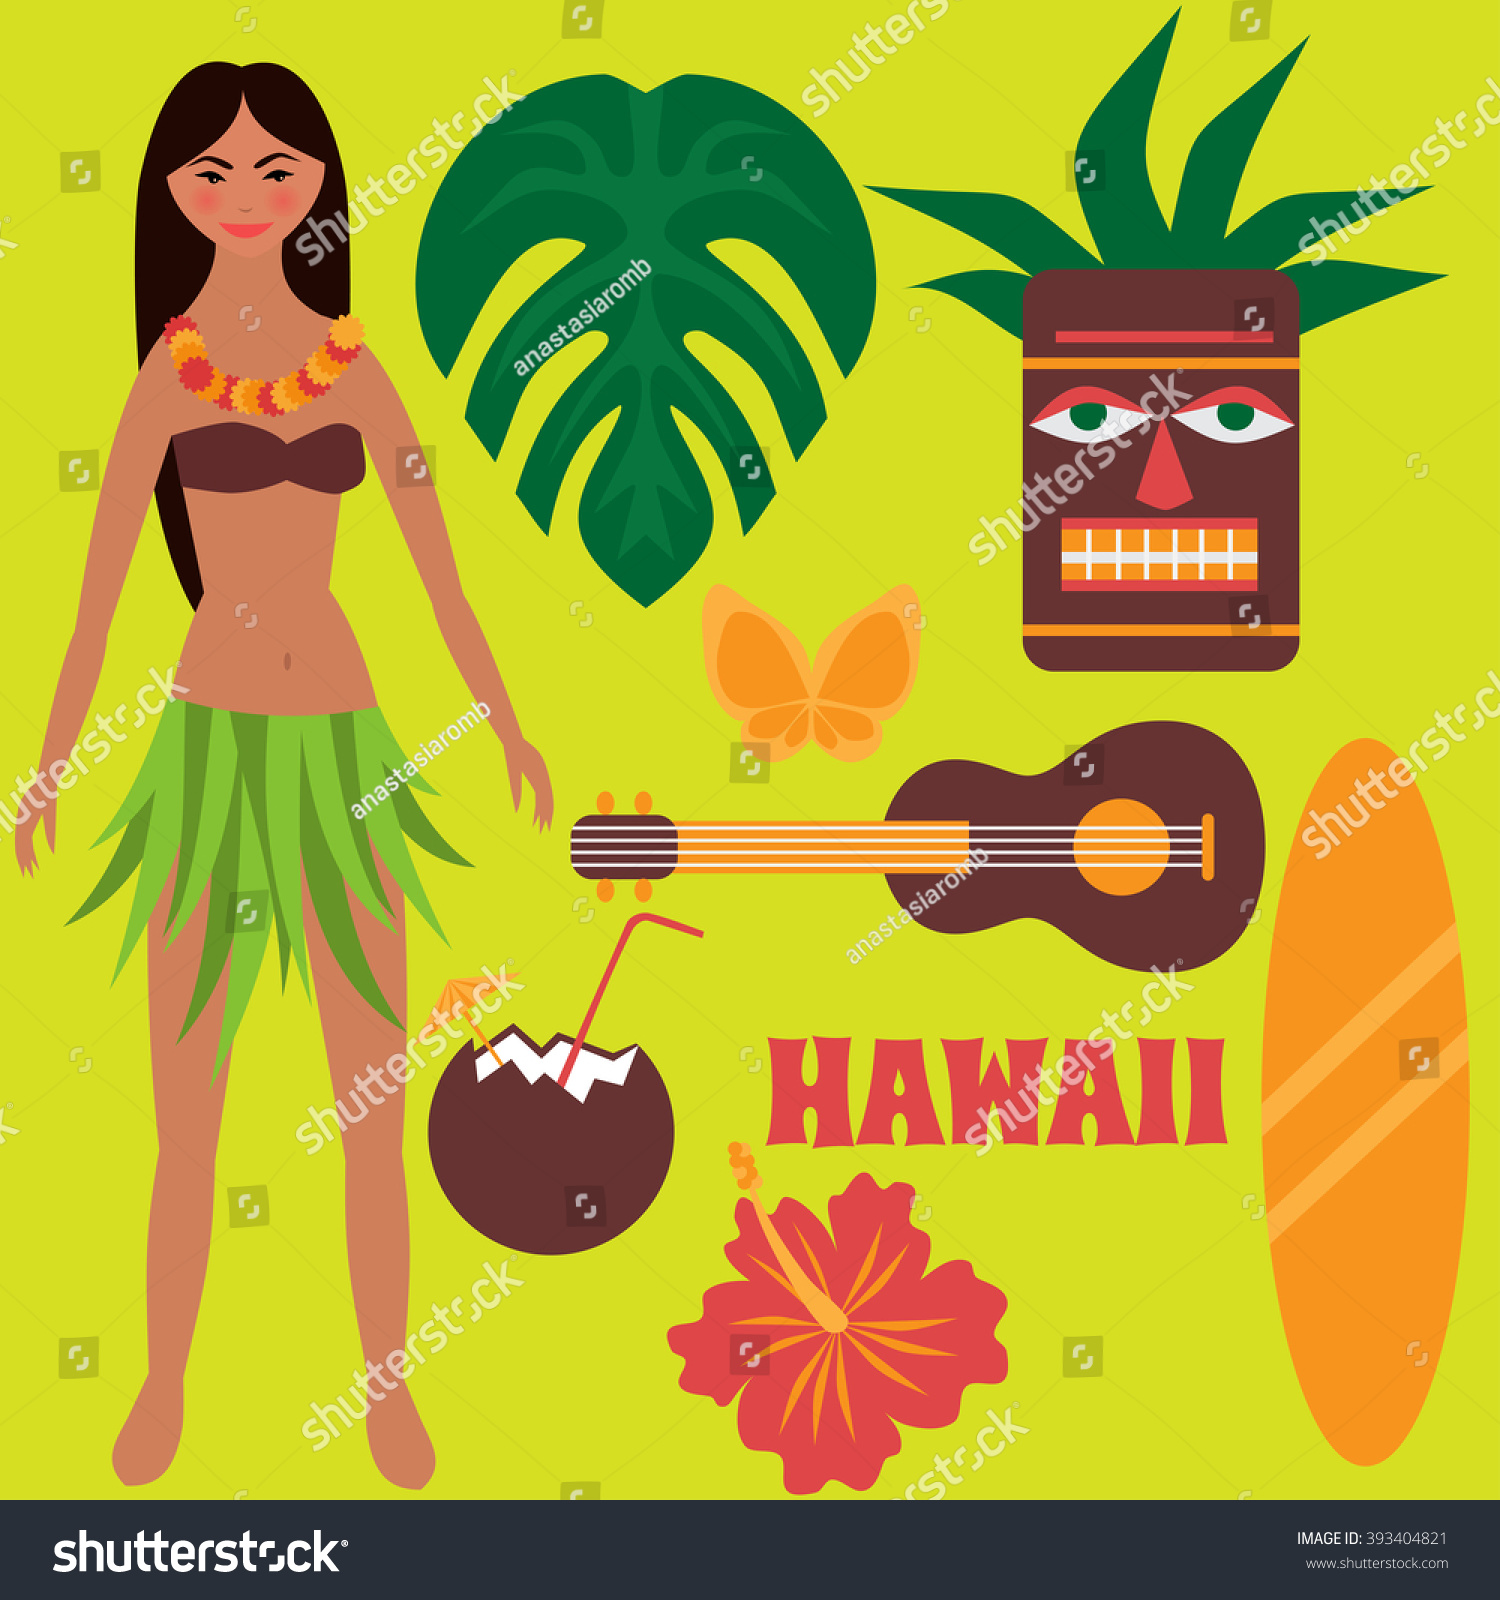 Luau party design elements tropical rest stock vector 393404821 luau party design elements tropical rest time off on hawaii islands vacation izmirmasajfo Gallery